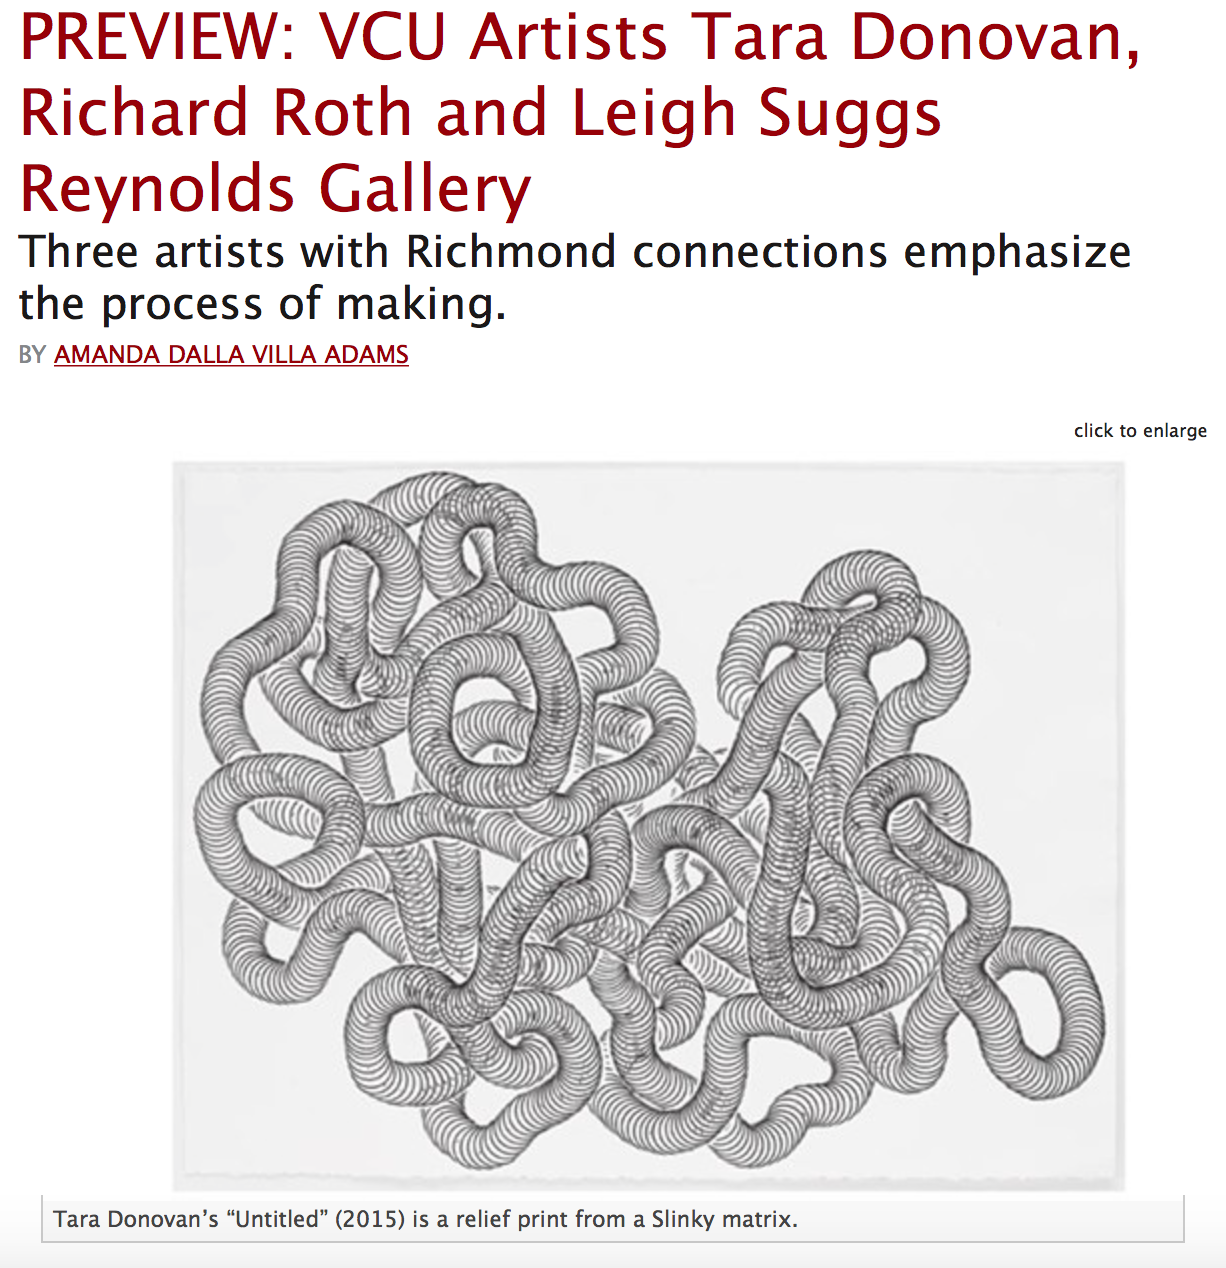 Preview: VCU Artists Tara Donovan, Richard Roth and Leigh Suggs